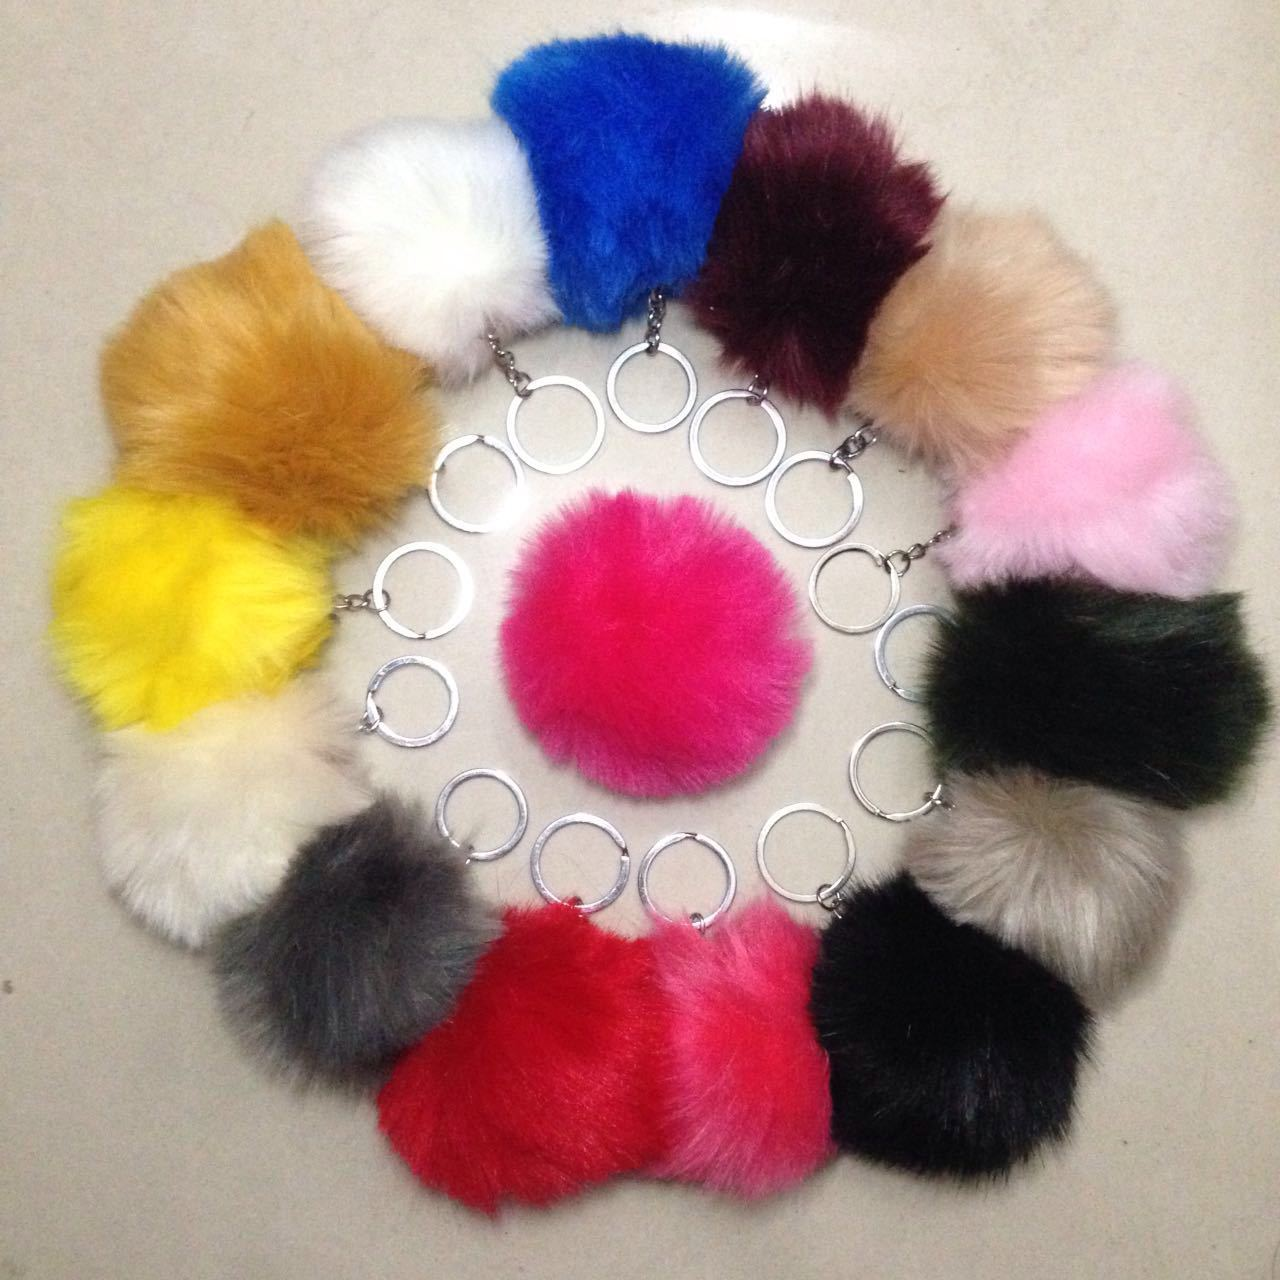 New Fur Ball Key Chain For Women 8cm Fur Pom Pom Keychain